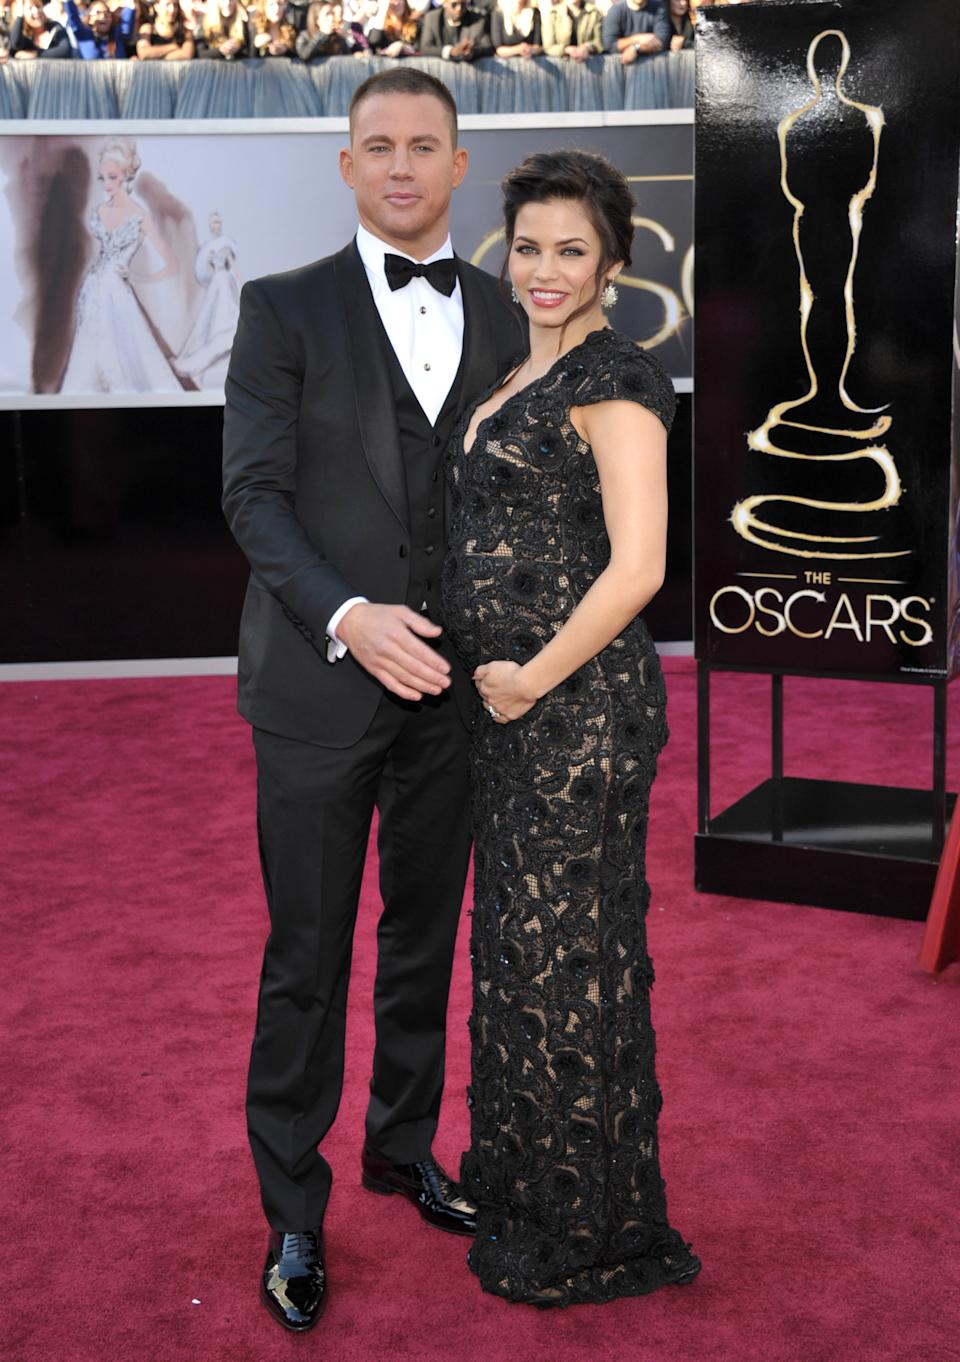 FILE - This Feb. 24, 2013 file photo shows actors Channing Tatum and his pregnant wife Jenna Dewan-Tatum at the 85th Academy Awards at the Dolby Theatre in Los Angeles.  Fashion experts say a streamlined style best suits a baby bump.  (Photo by John Shearer/Invision/AP)